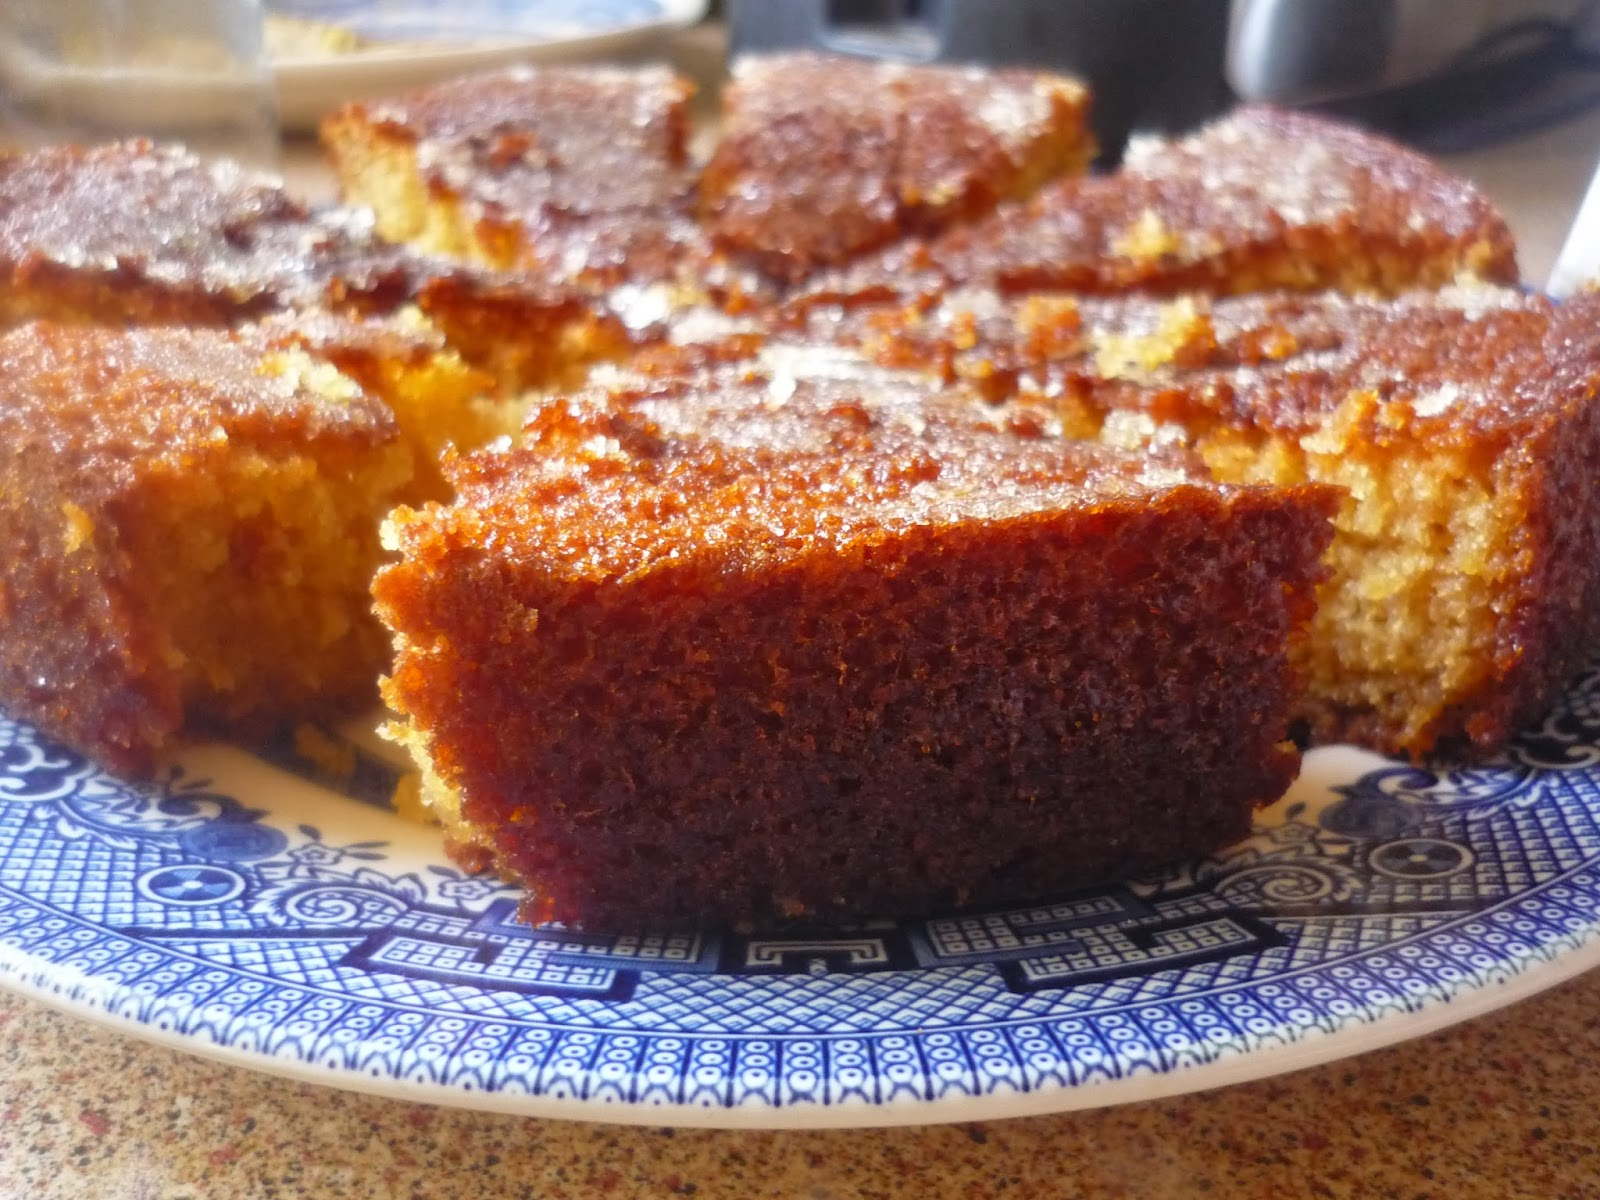 Everyday Life On A Shoestring: Food Waste Friday - Marmalade Cake